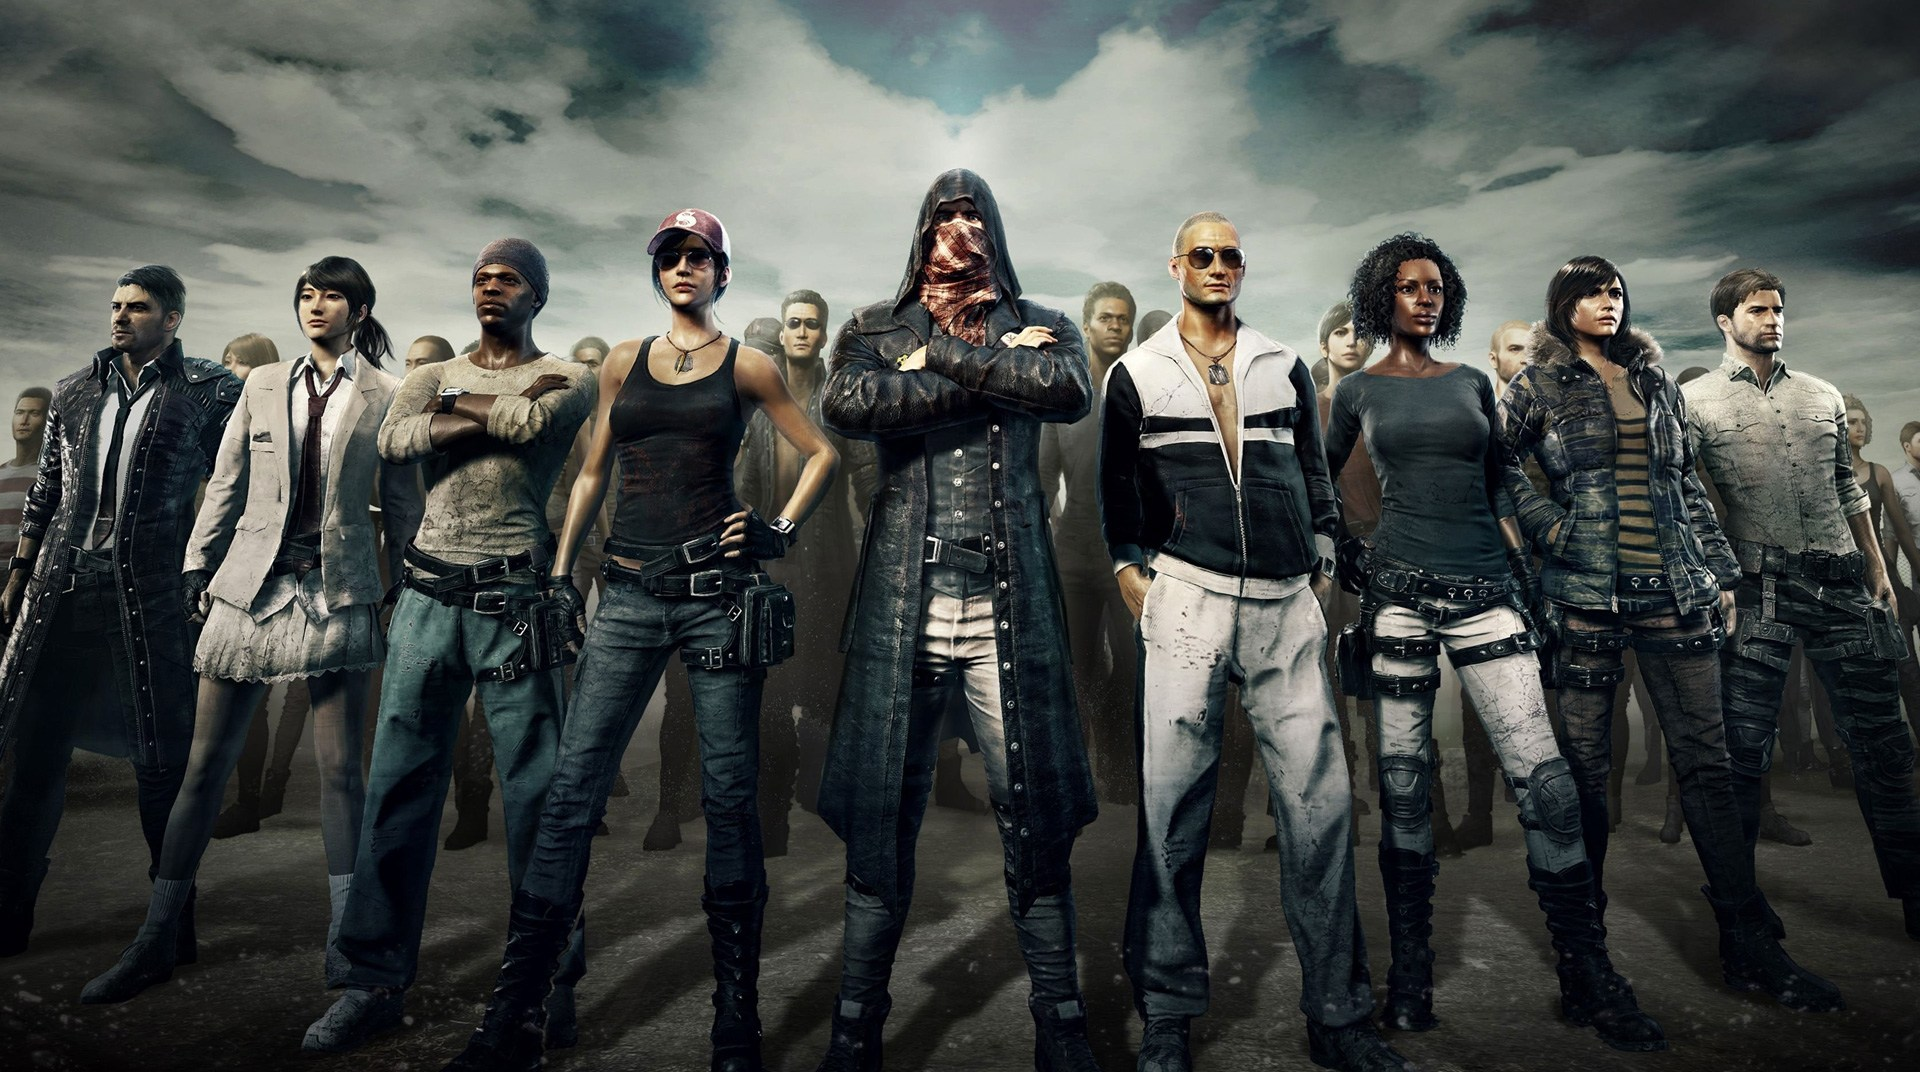 Download Pubg Mobile: Download PubG Mobile On PC With BlueStacks